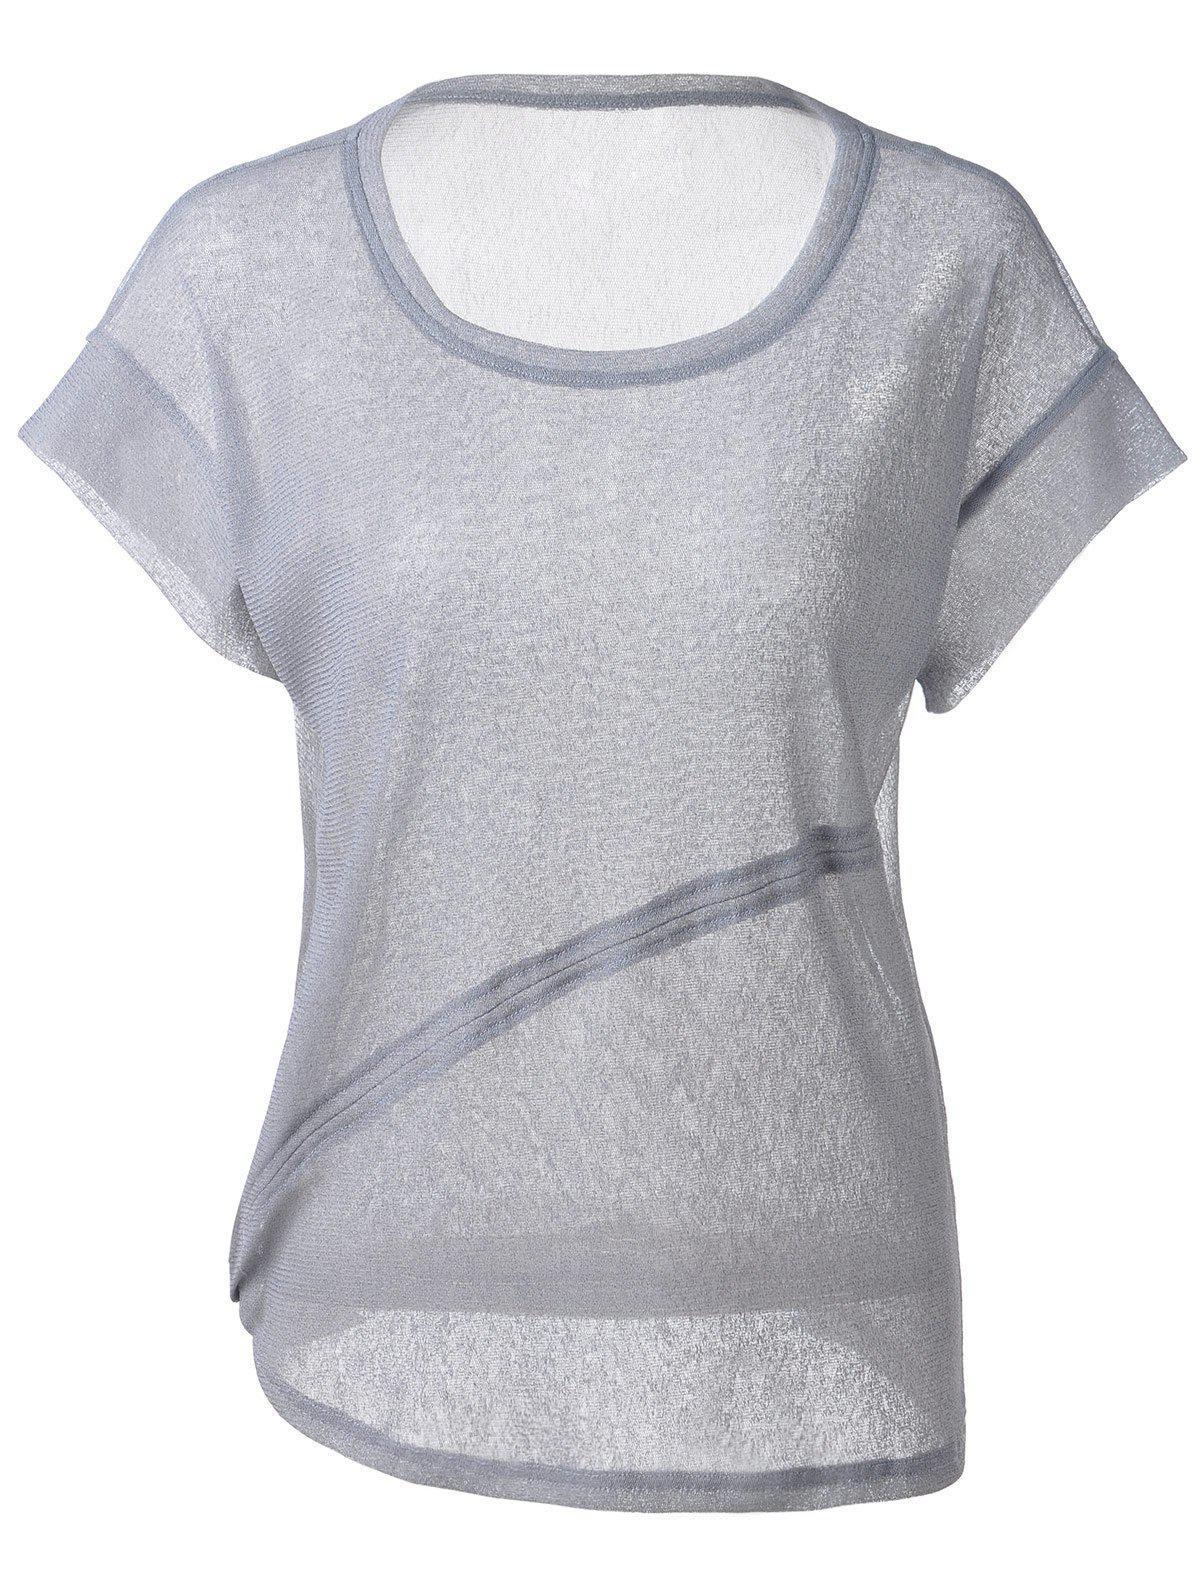 Fashionable Women's Loose-Fitting Scoop Neck Cut-Off Rule T-shirt - BLUE GRAY L